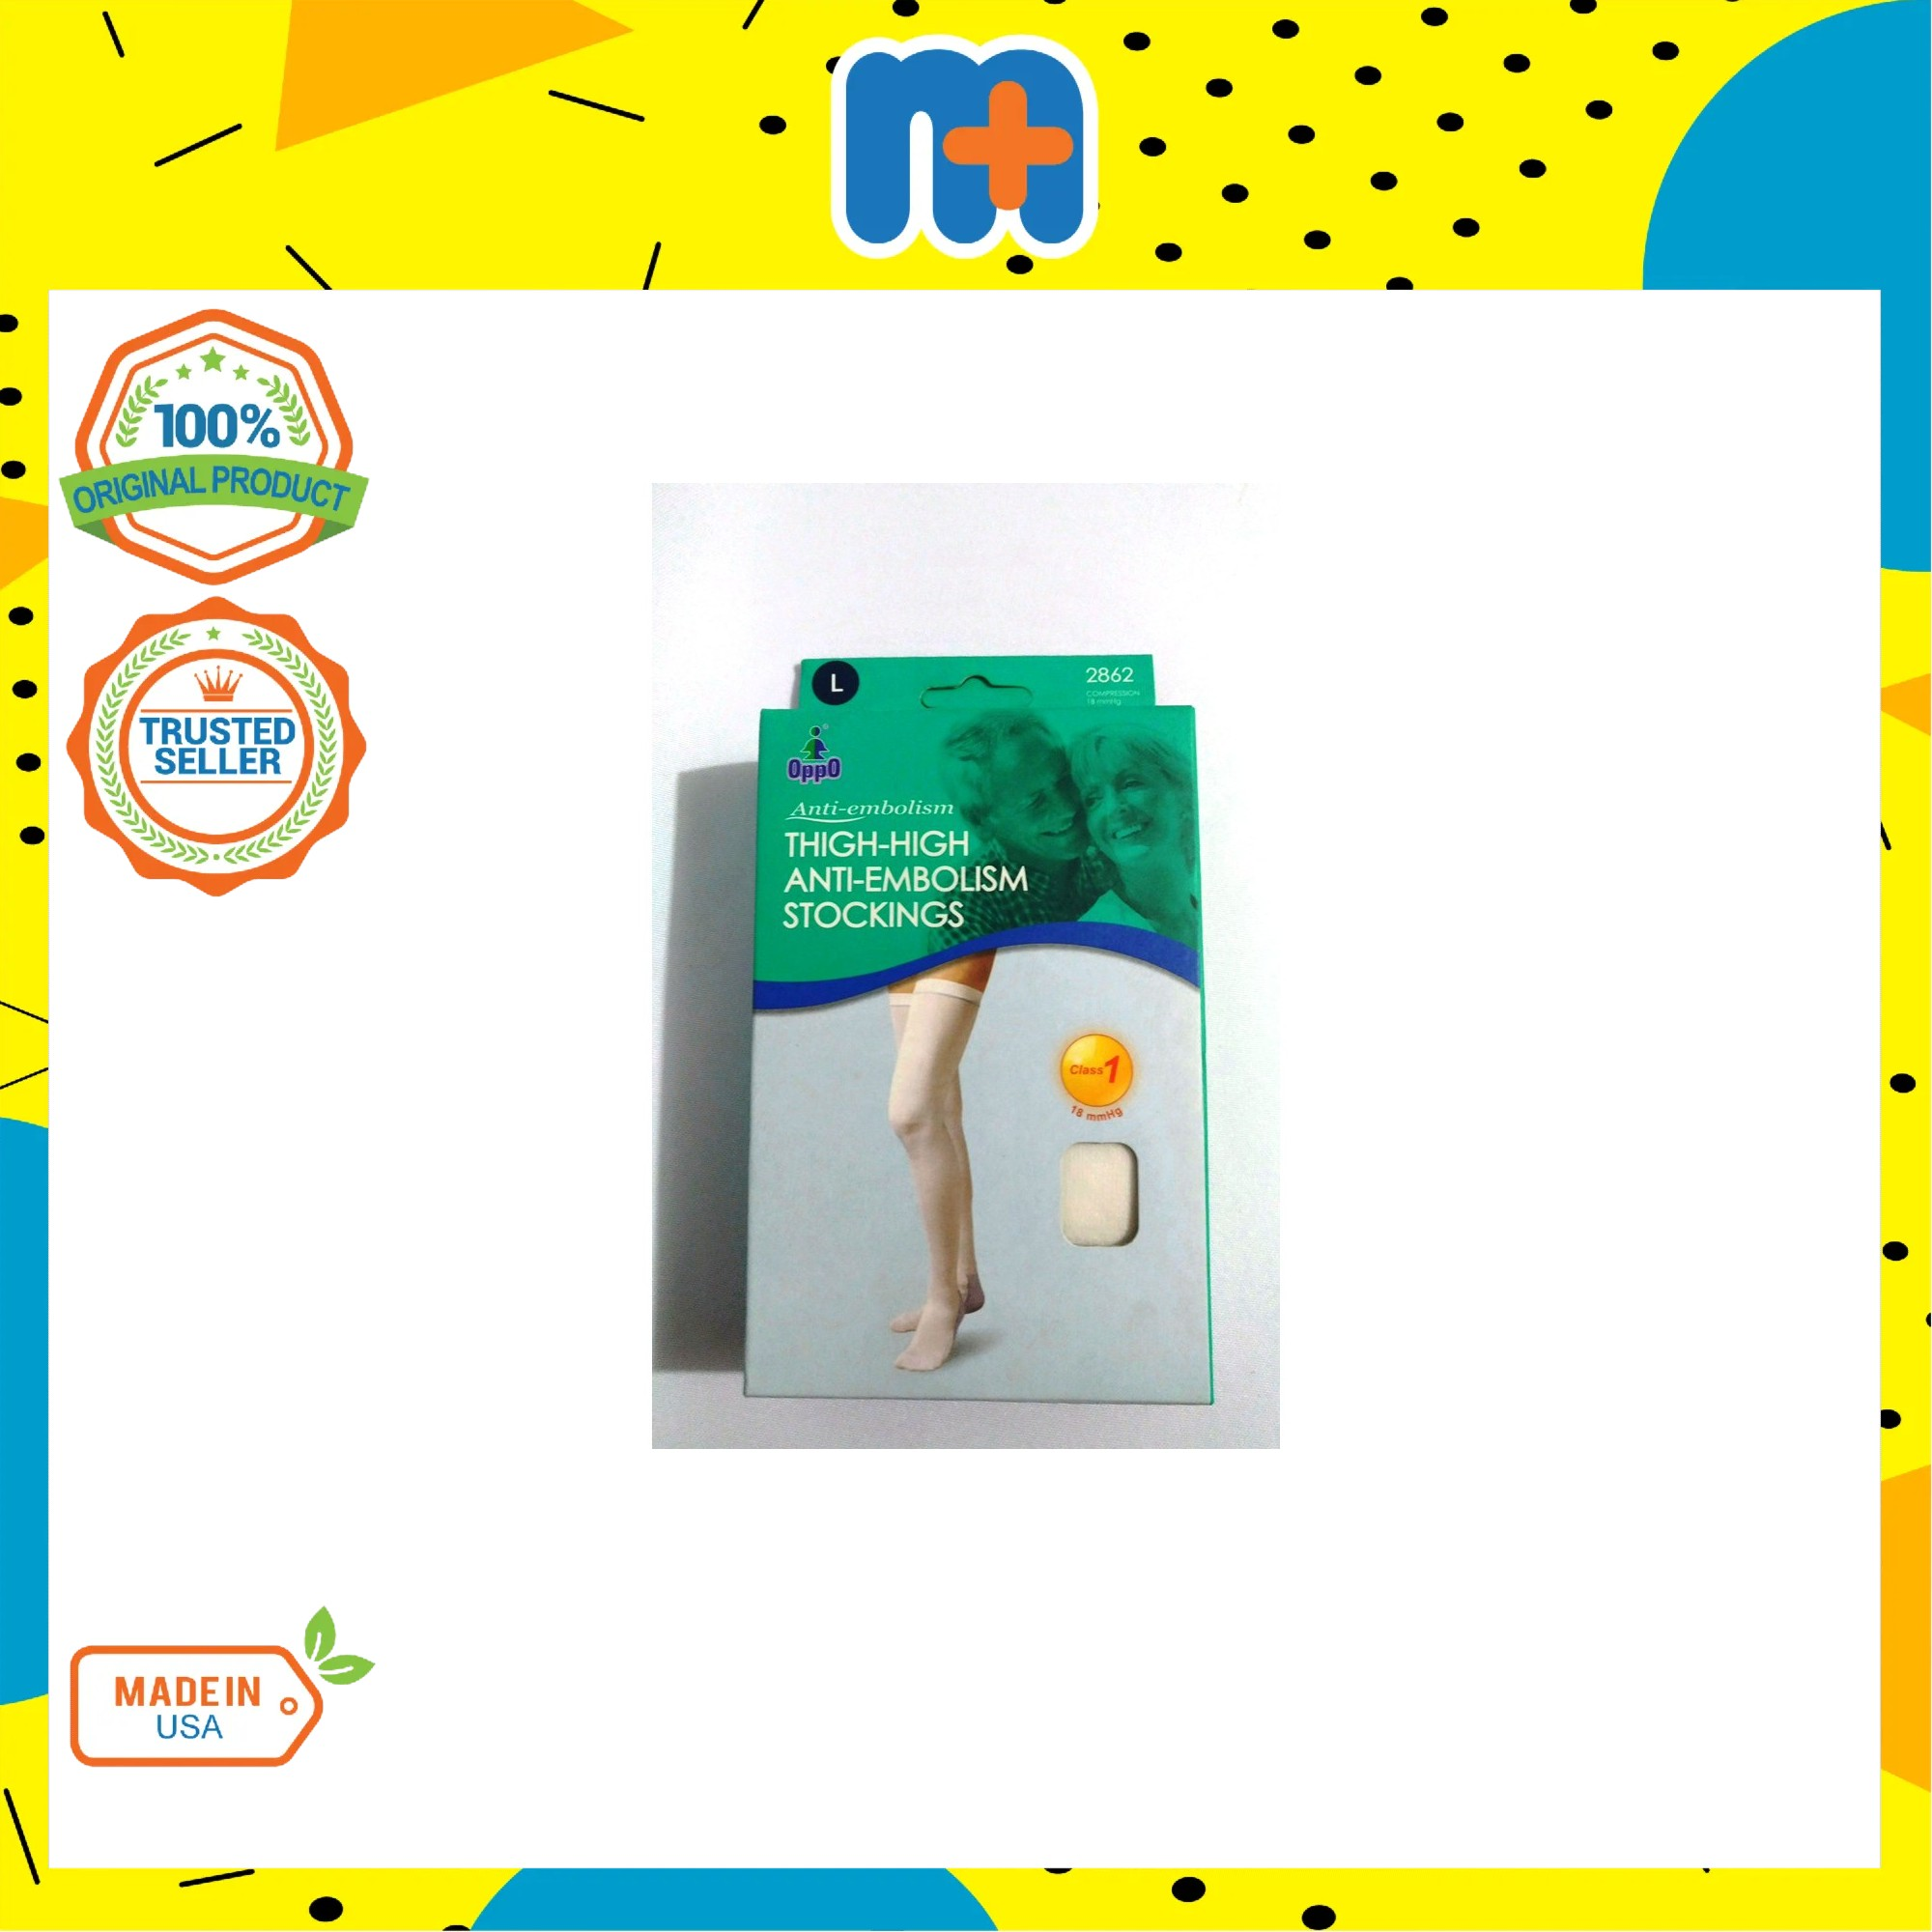 [MPLUS] OPPO Thigh-High Anti-Embolism Stockings L Size 2862